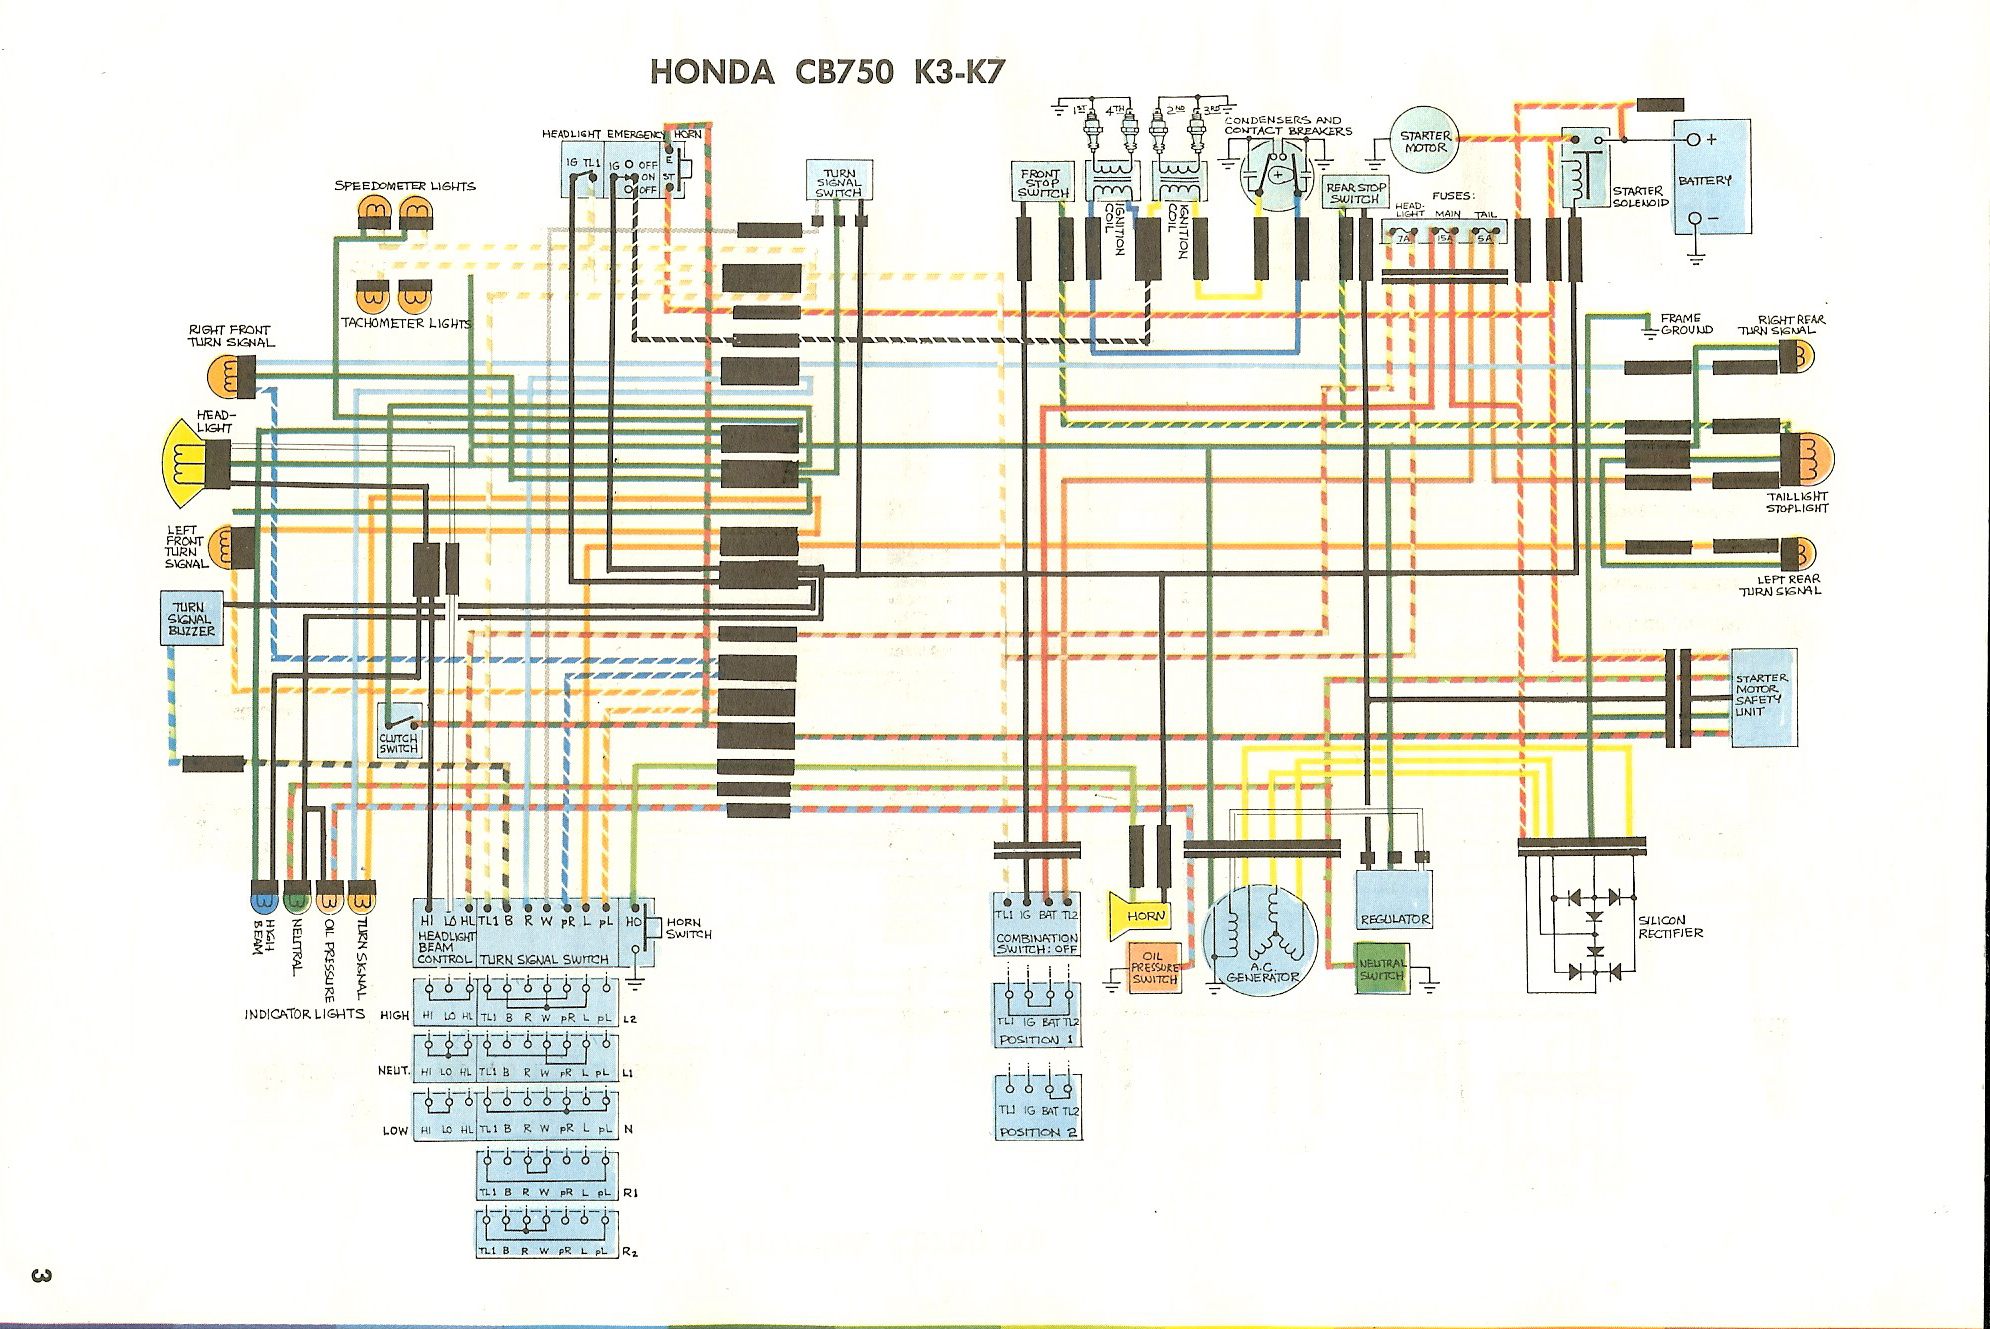 WD750K3_K7 1971 honda cb350 wiring diagram cb650 wiring diagram \u2022 wiring 1976 cb550f wiring diagram at alyssarenee.co